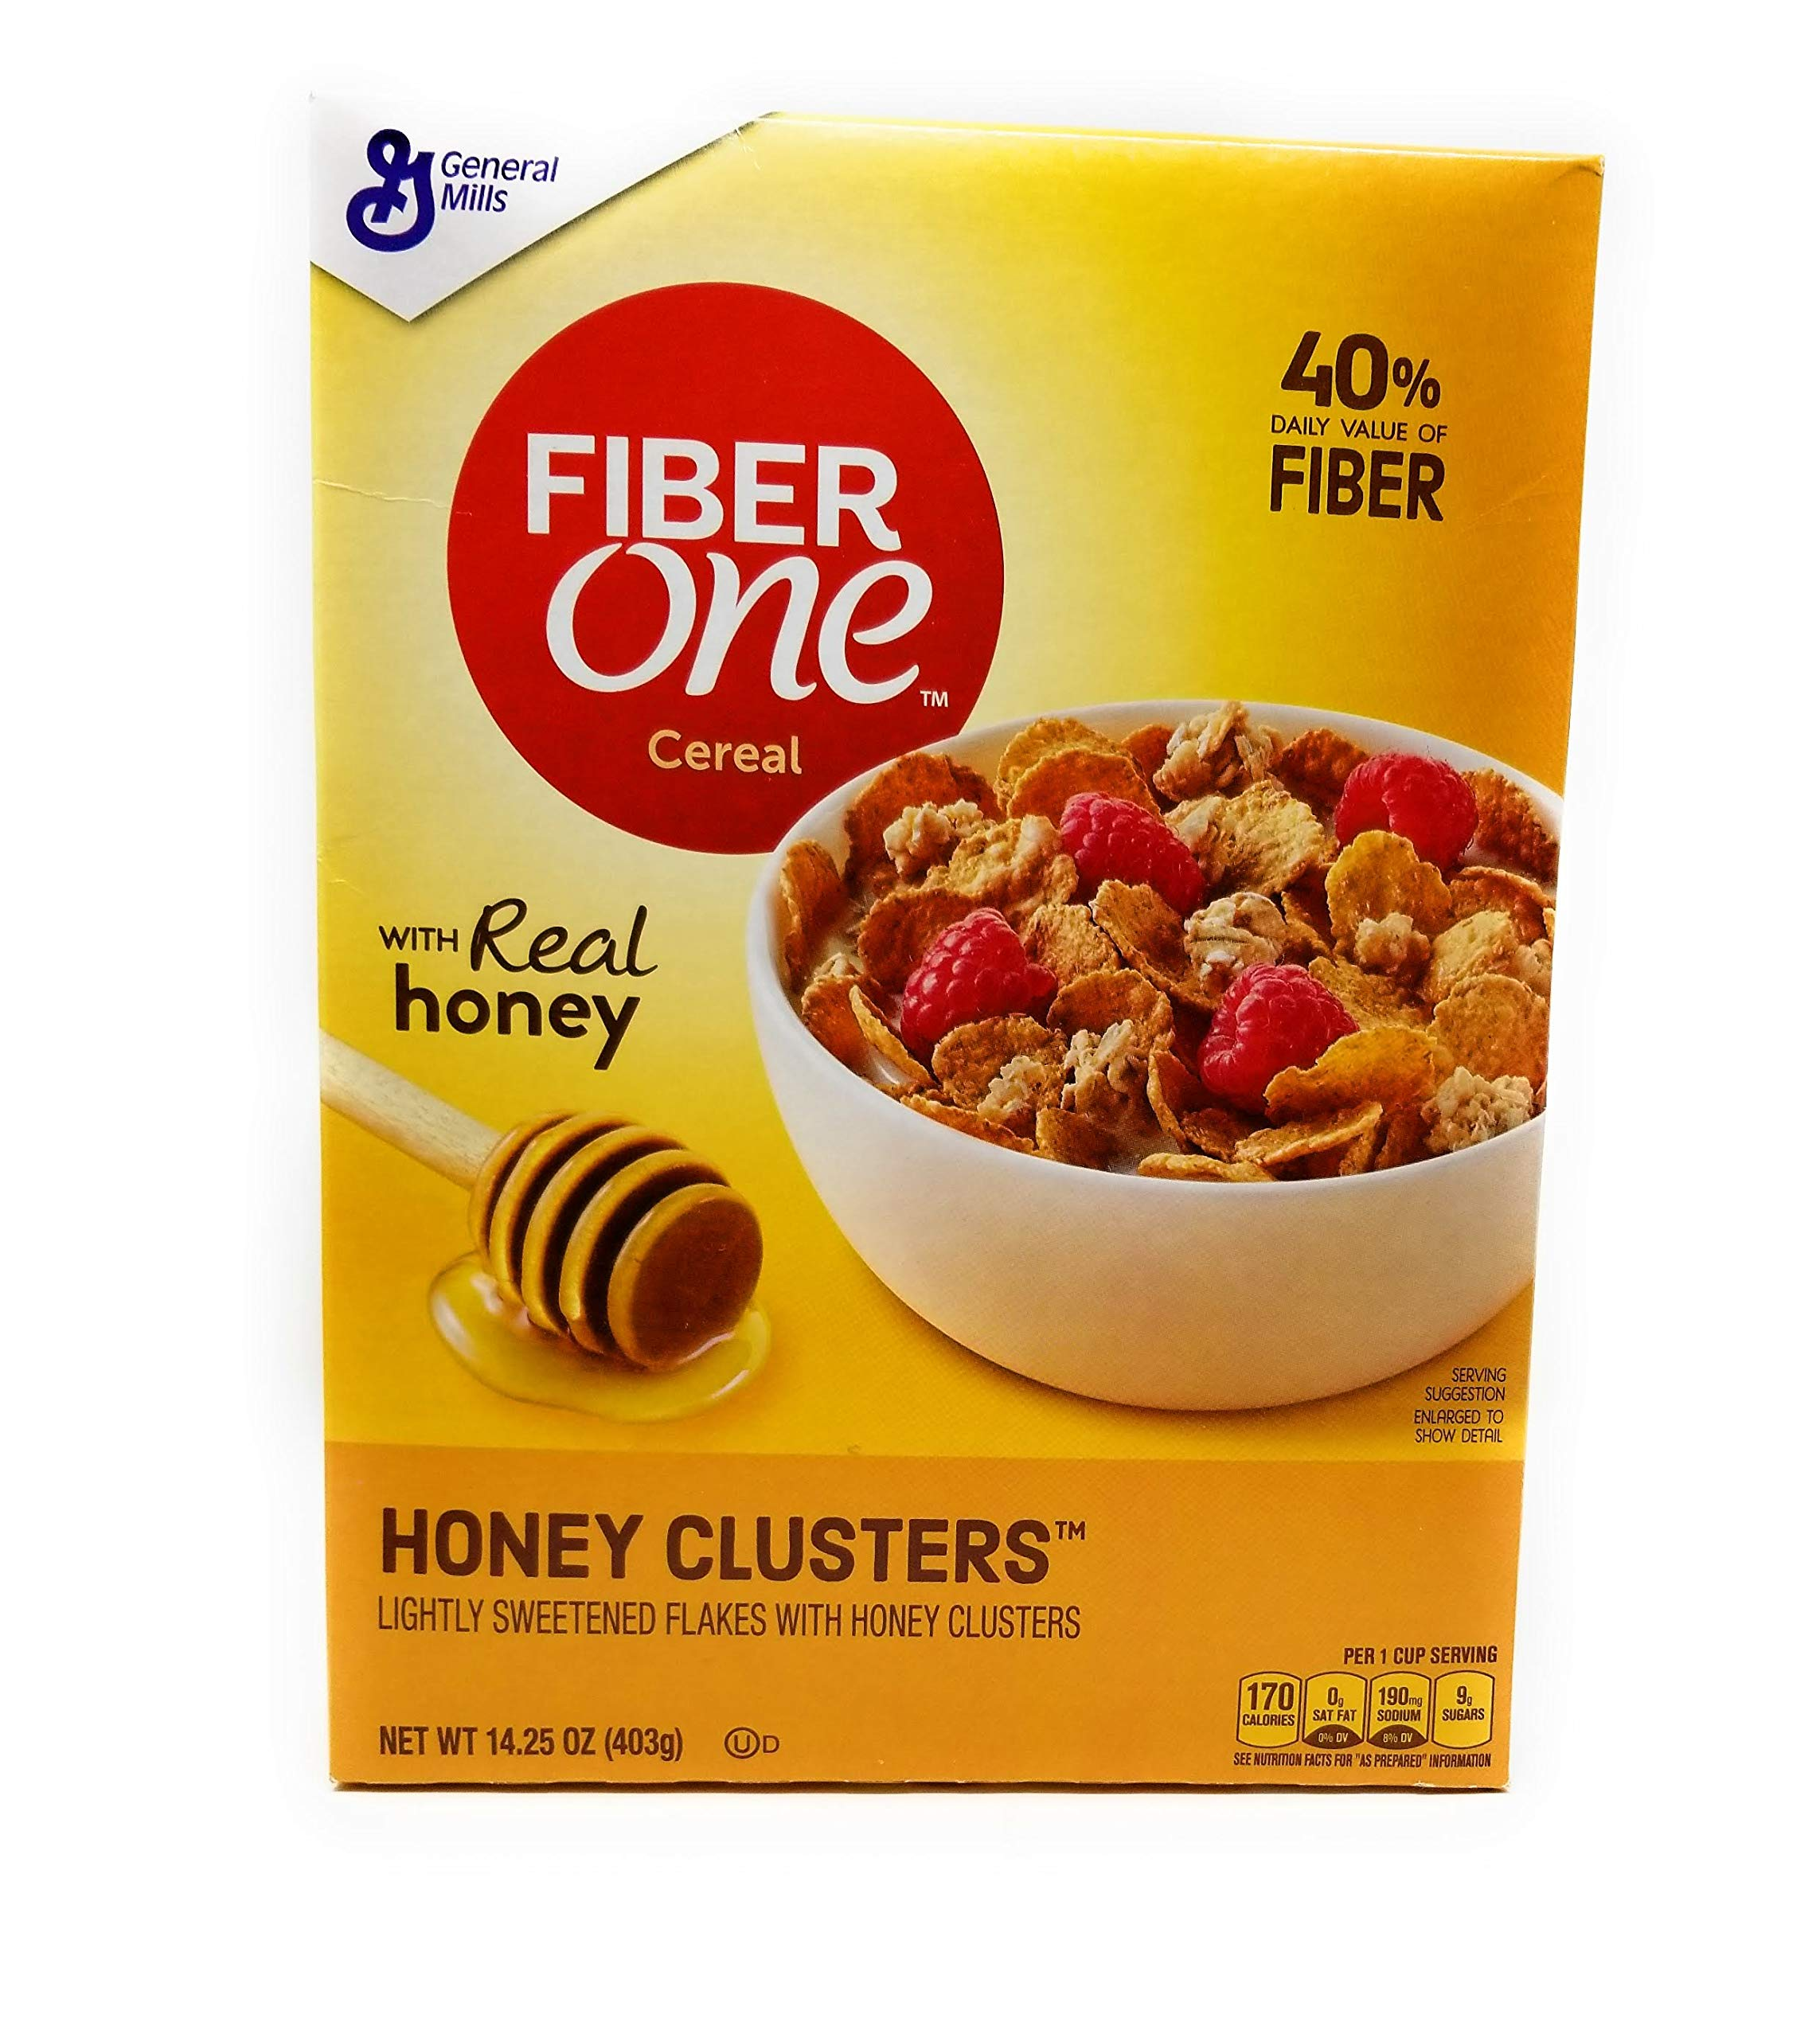 Fiber One Honey Clusters, 14.25oz Box (Pack of 4)